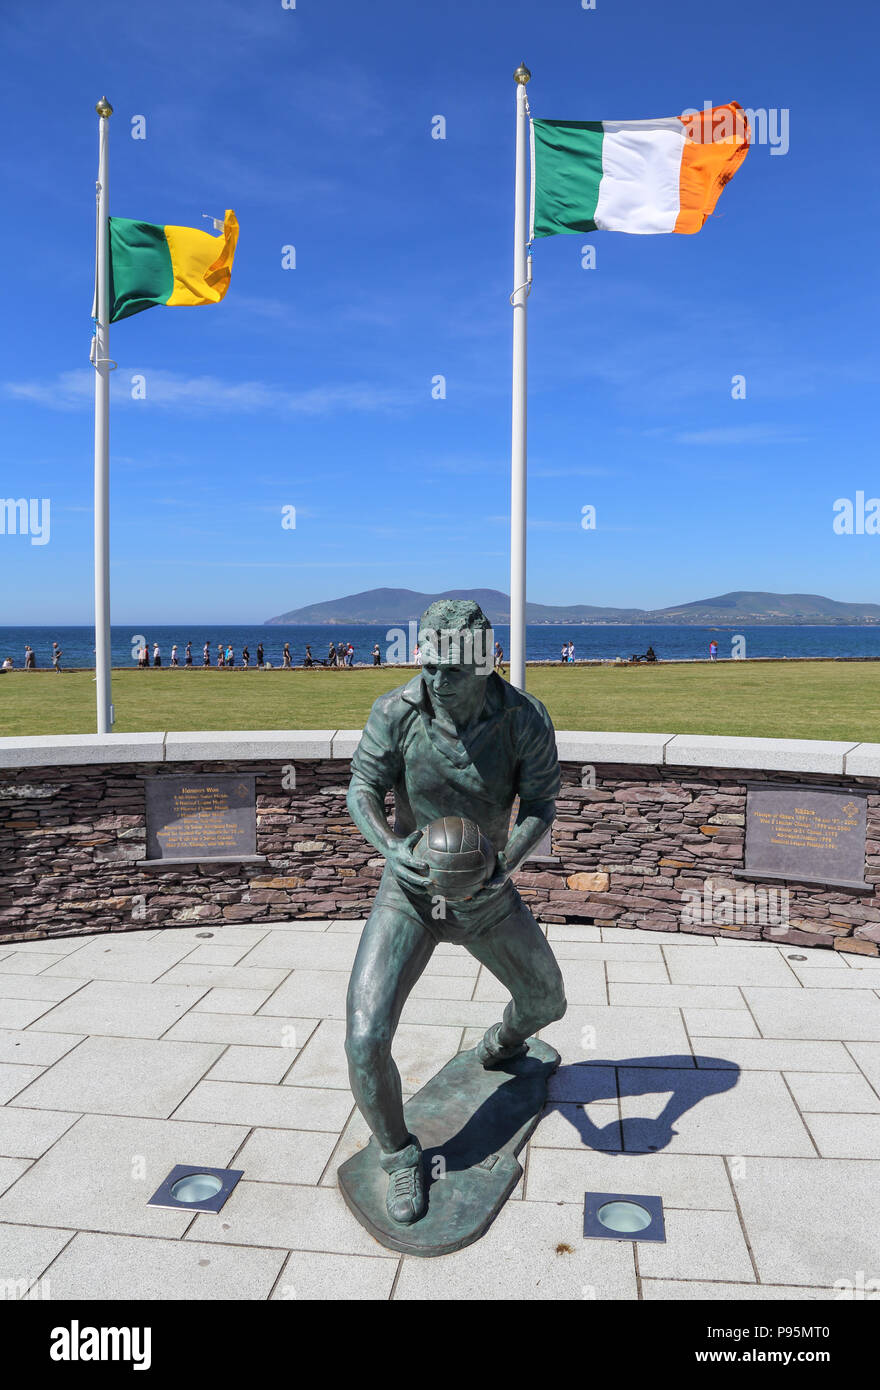 The bronze statue of famed Gaelic footballer and coach Mike O'Dwyer on the waterfront of waterville, Ireland, County Kerry - Stock Image